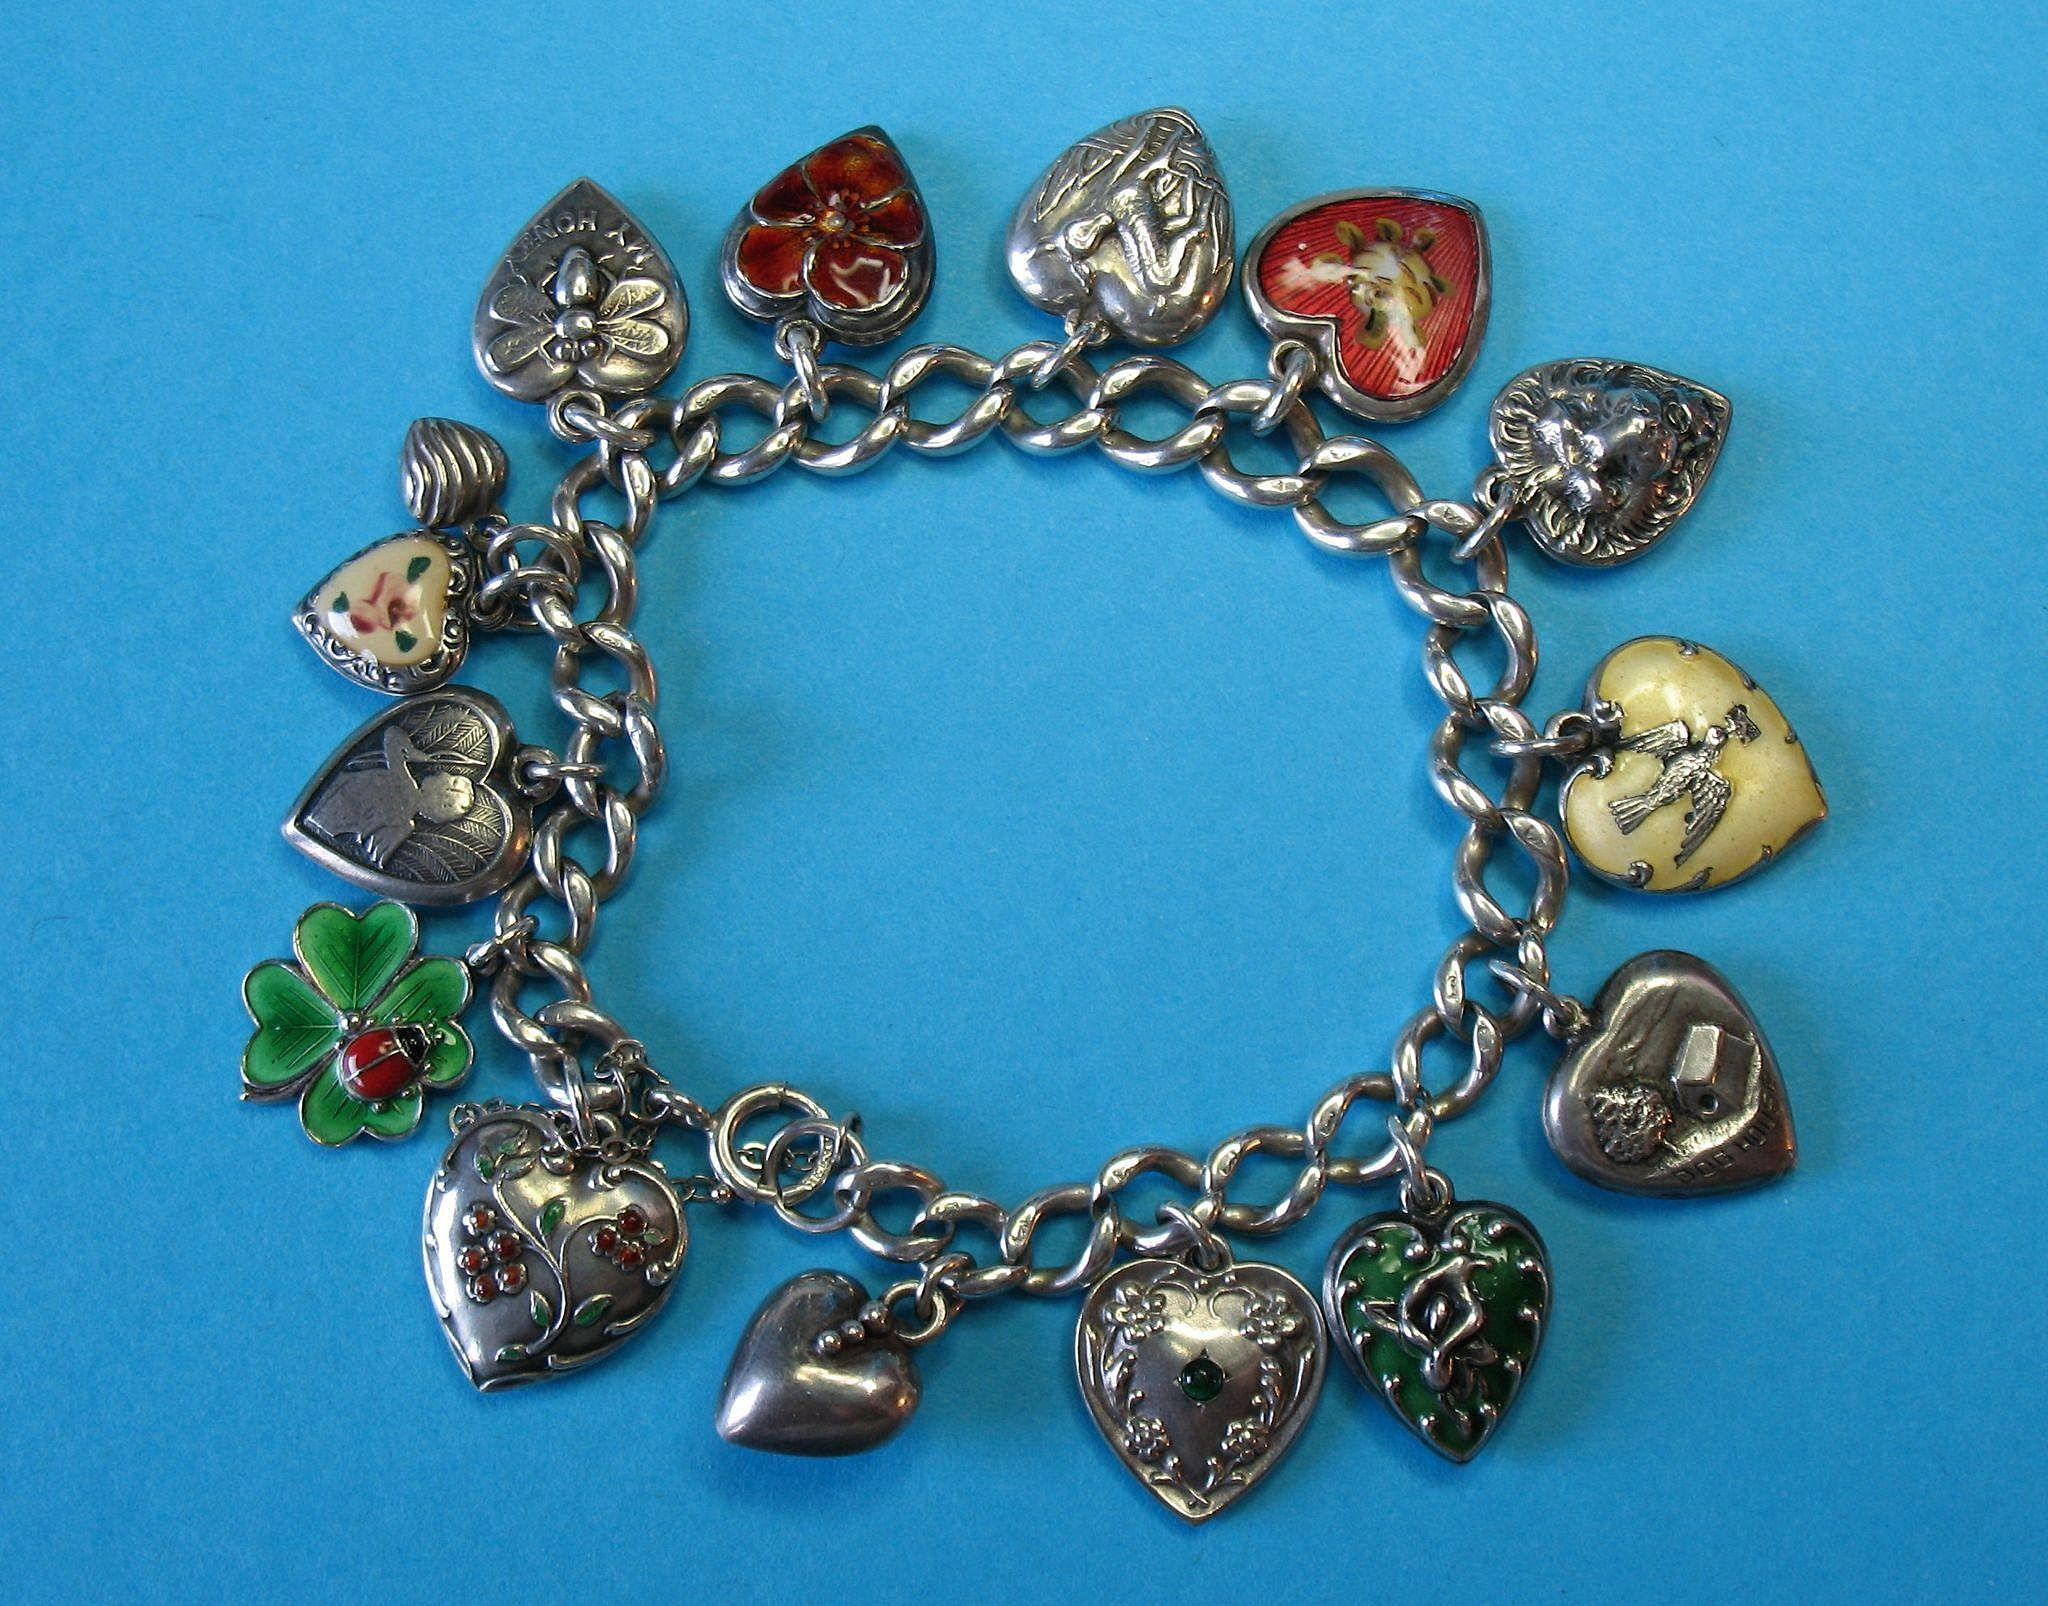 Vintage Sterling Silver Puffy Heart Charm Bracelet Rare Charms Just 4 S Ruby Lane